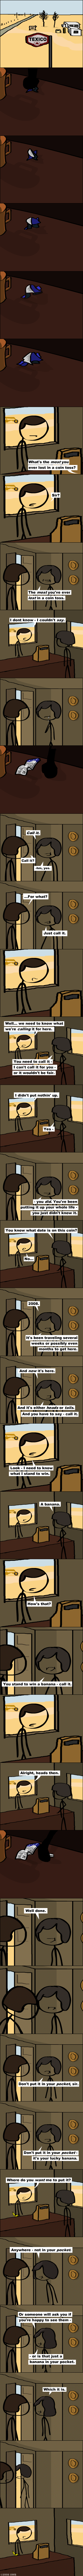 20081221 no quarter - moar comics #12